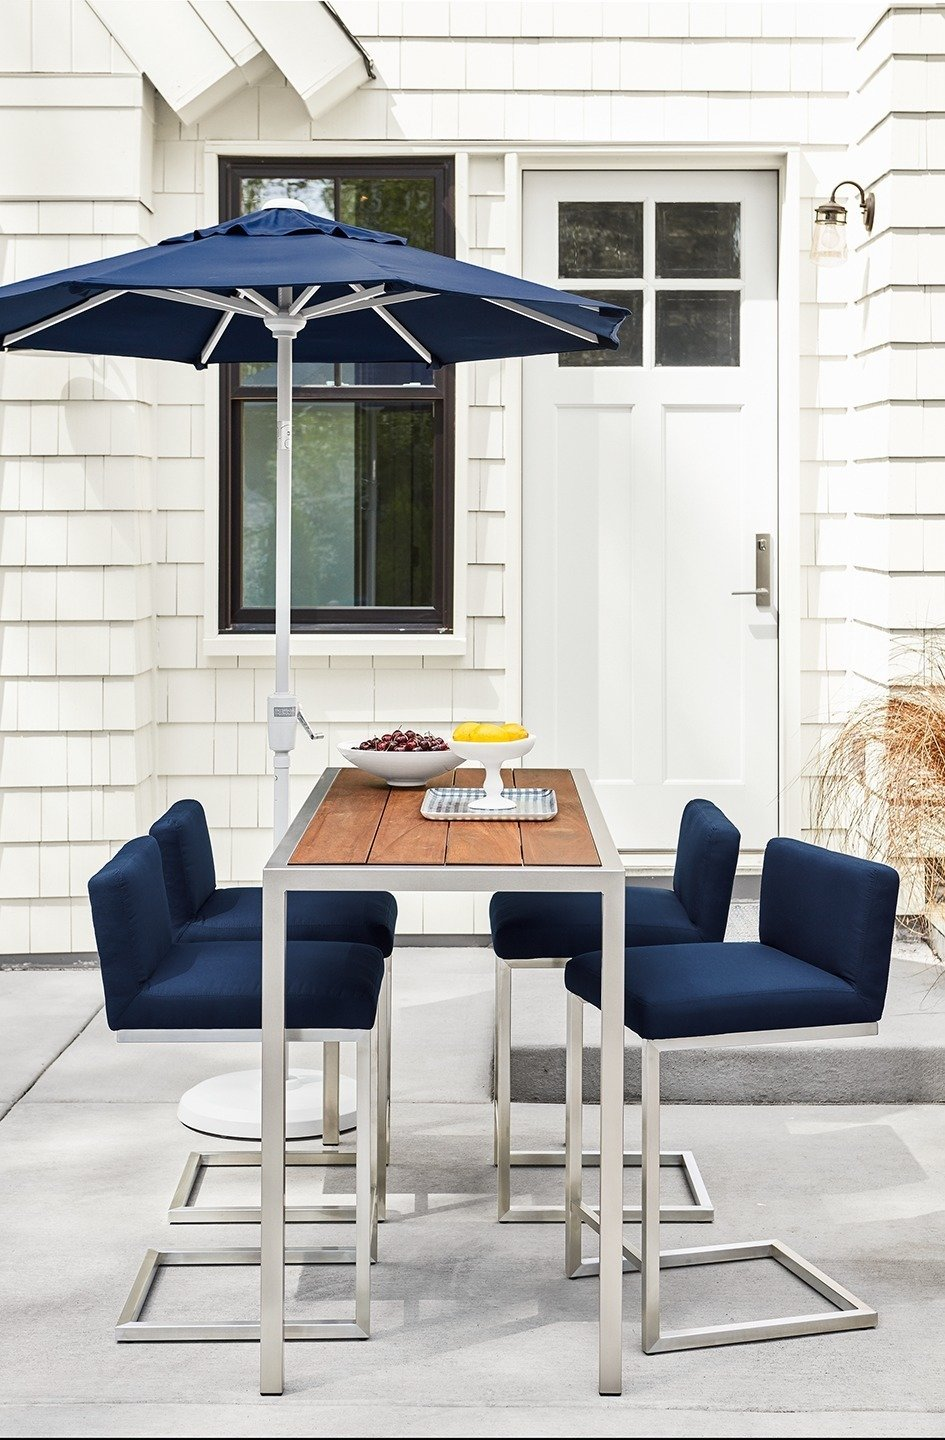 Outdoor, Concrete Patio, Porch, Deck, and Back Yard Montego counter table, Finn counter stools, Maui umbrella  Photo 6 of 8 in Expert Design Advice: Outdoor Dining Spaces